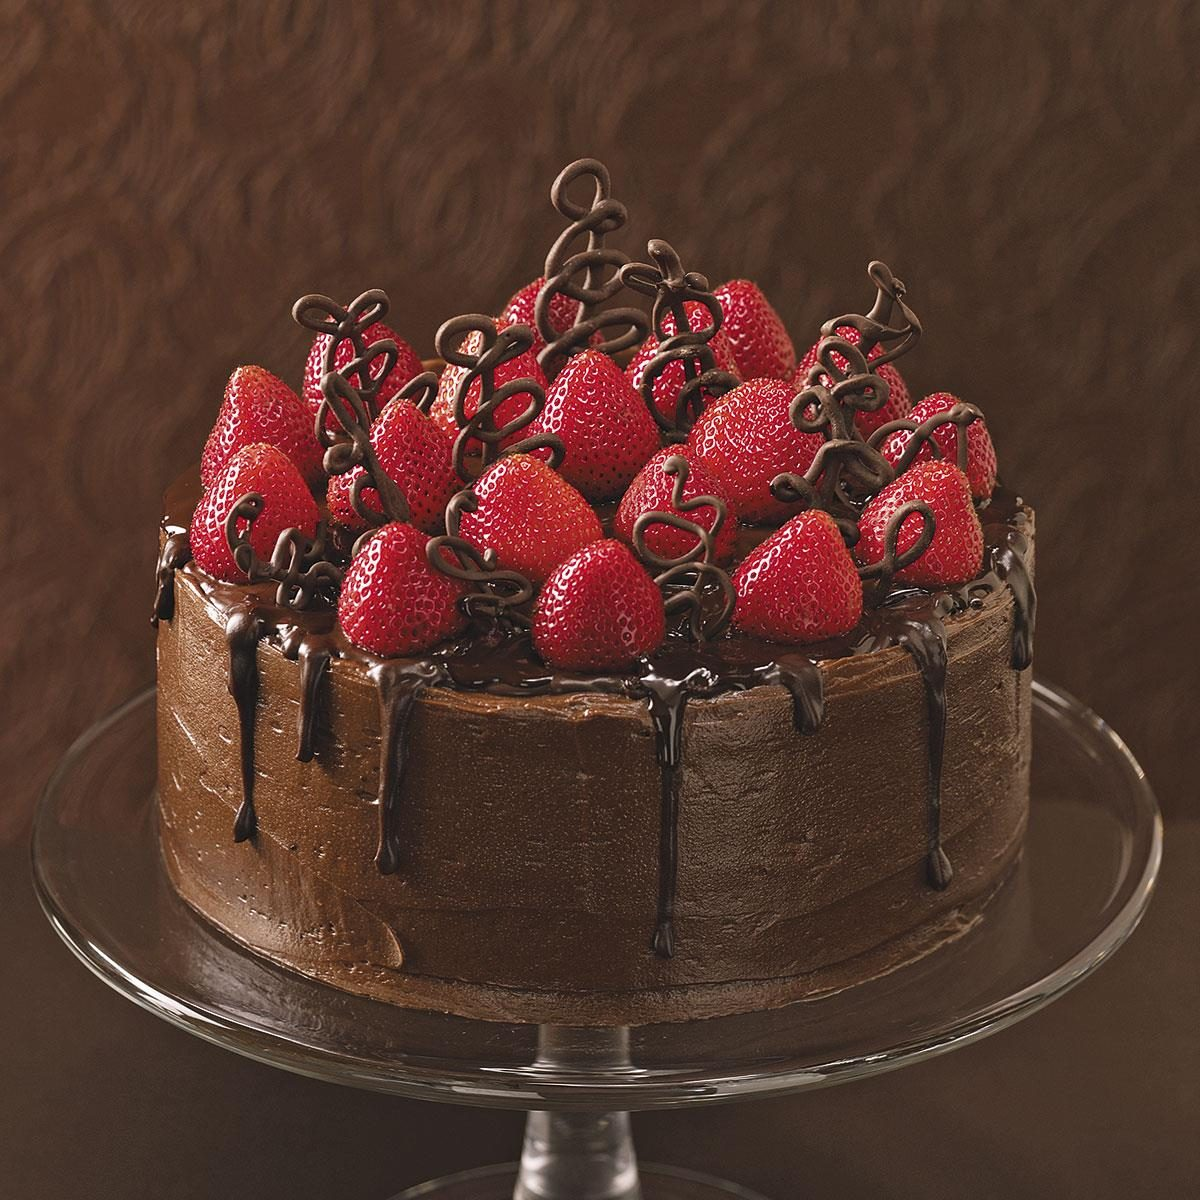 New Chocolate Cake Recipe